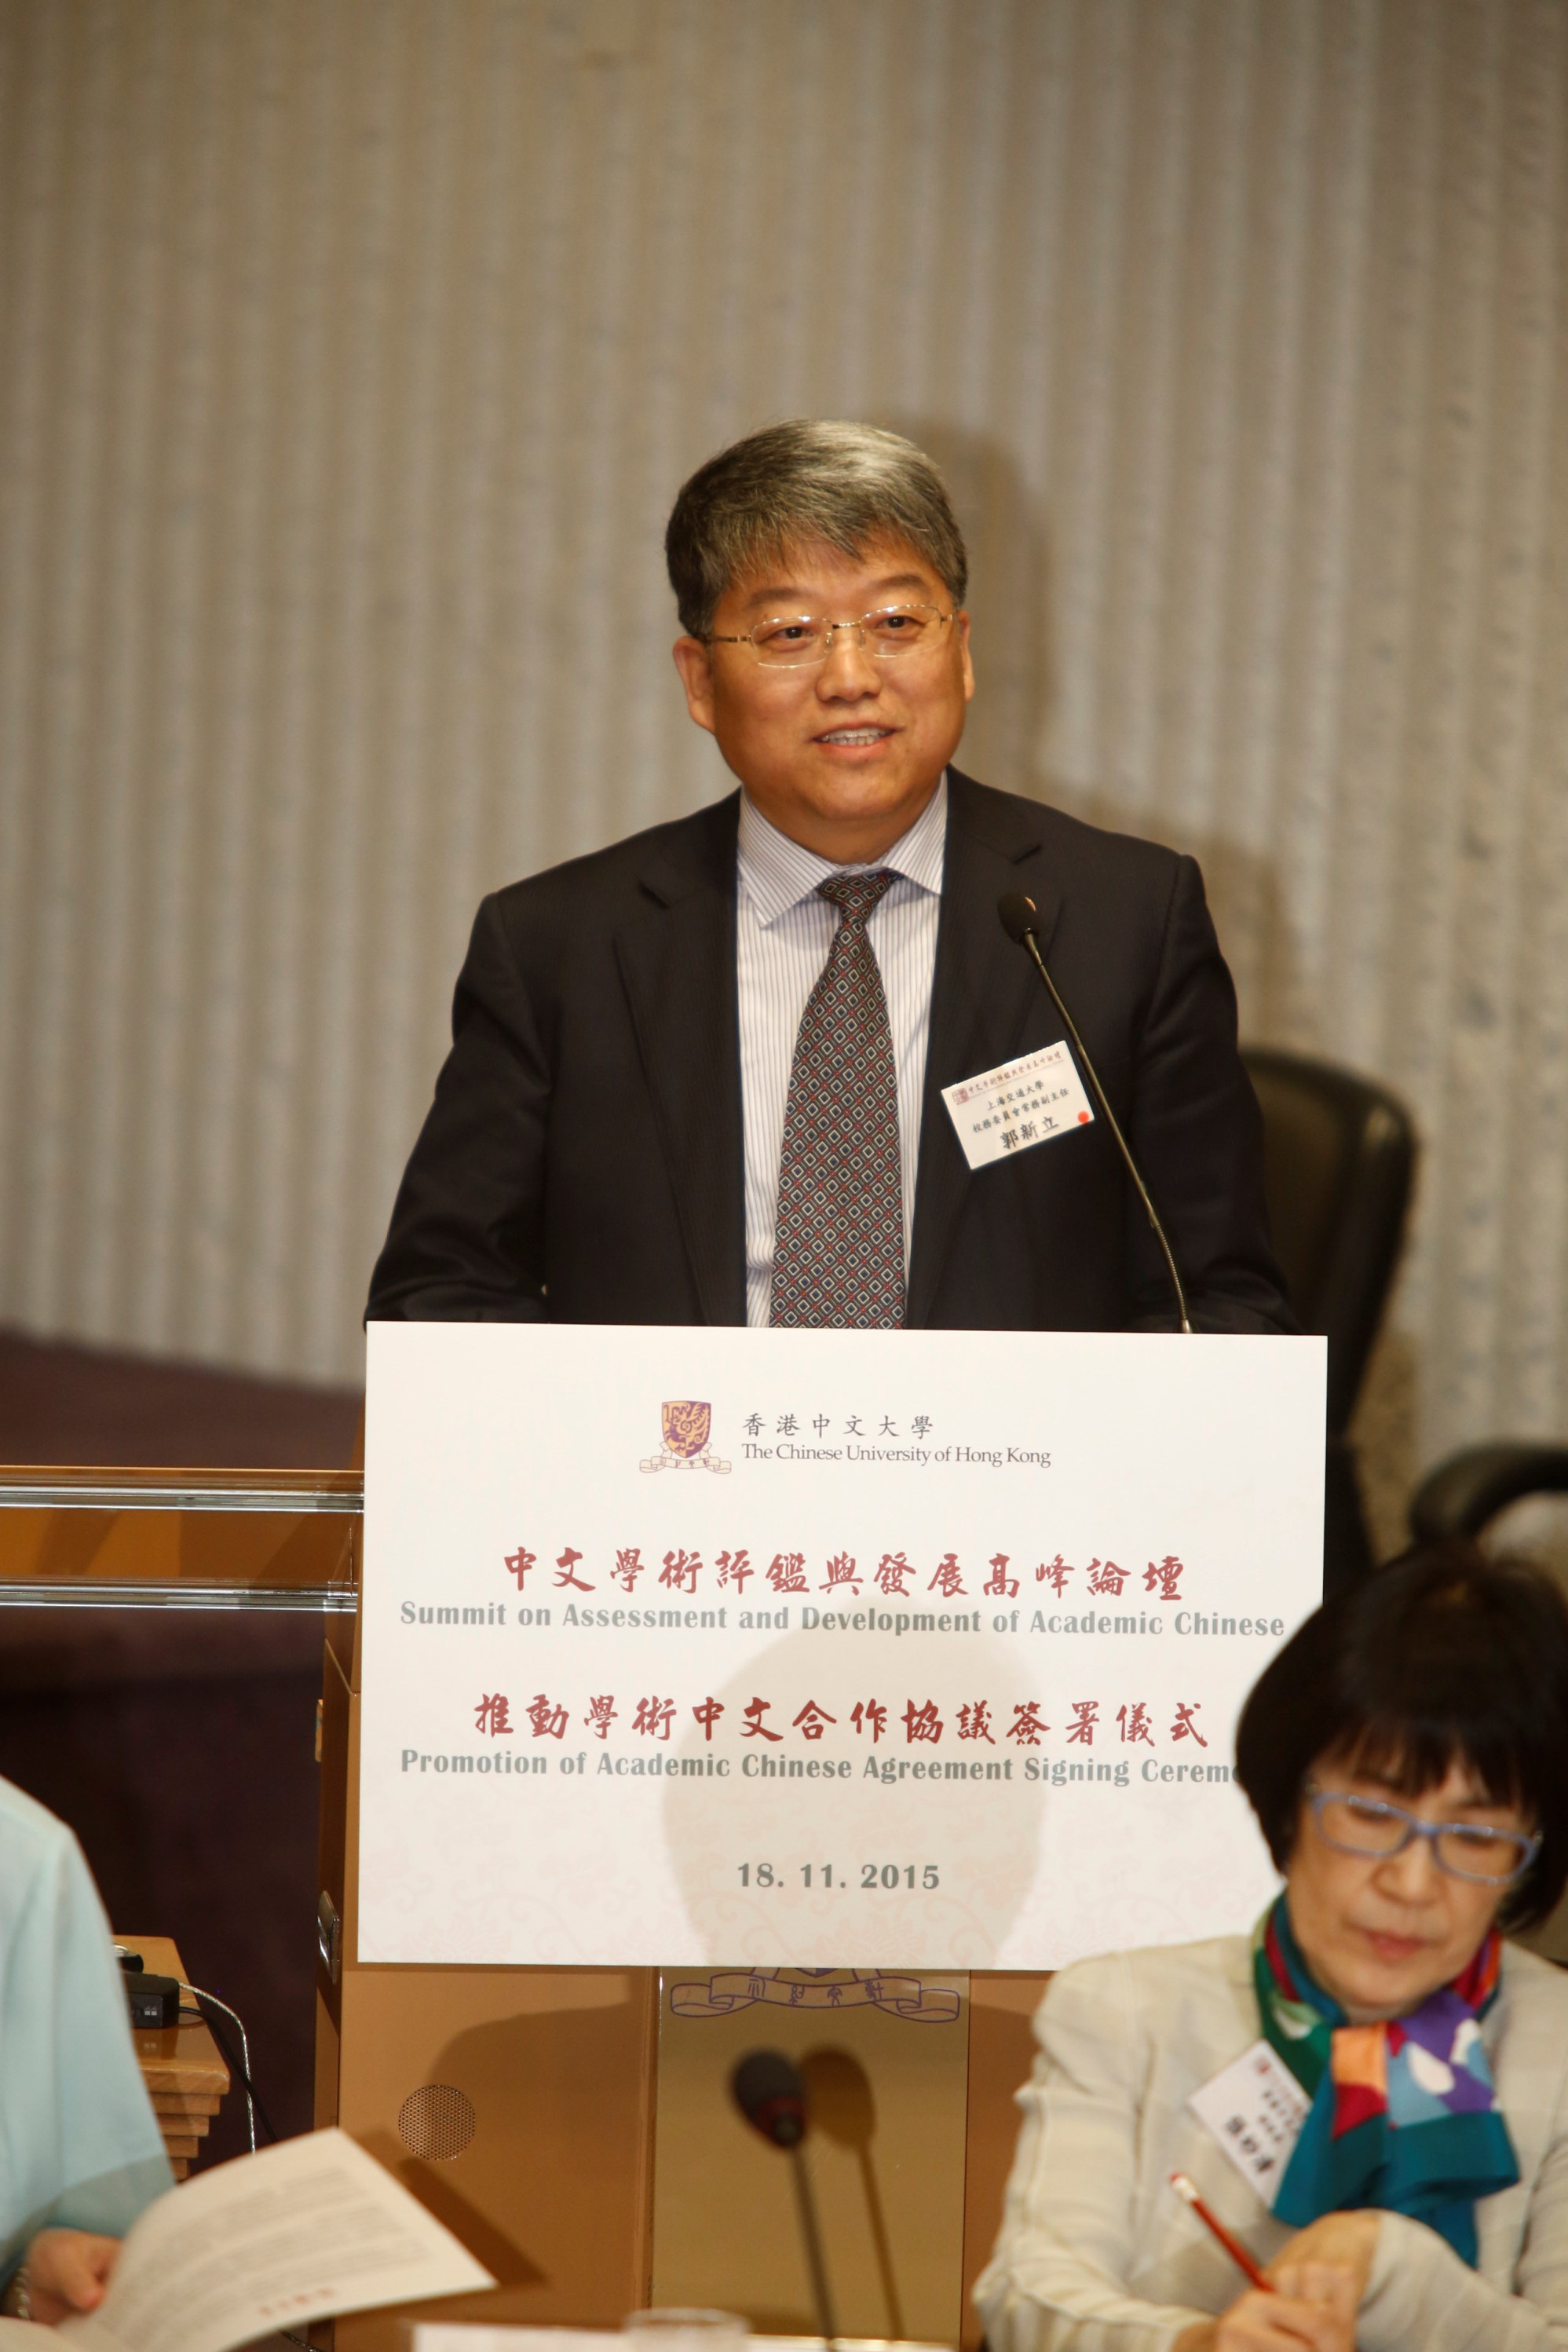 Prof. Guo Xin-Li, Vice Party Secretary of Shanghai Jiao Tong University, one of the initiating universities, delivers a speech.